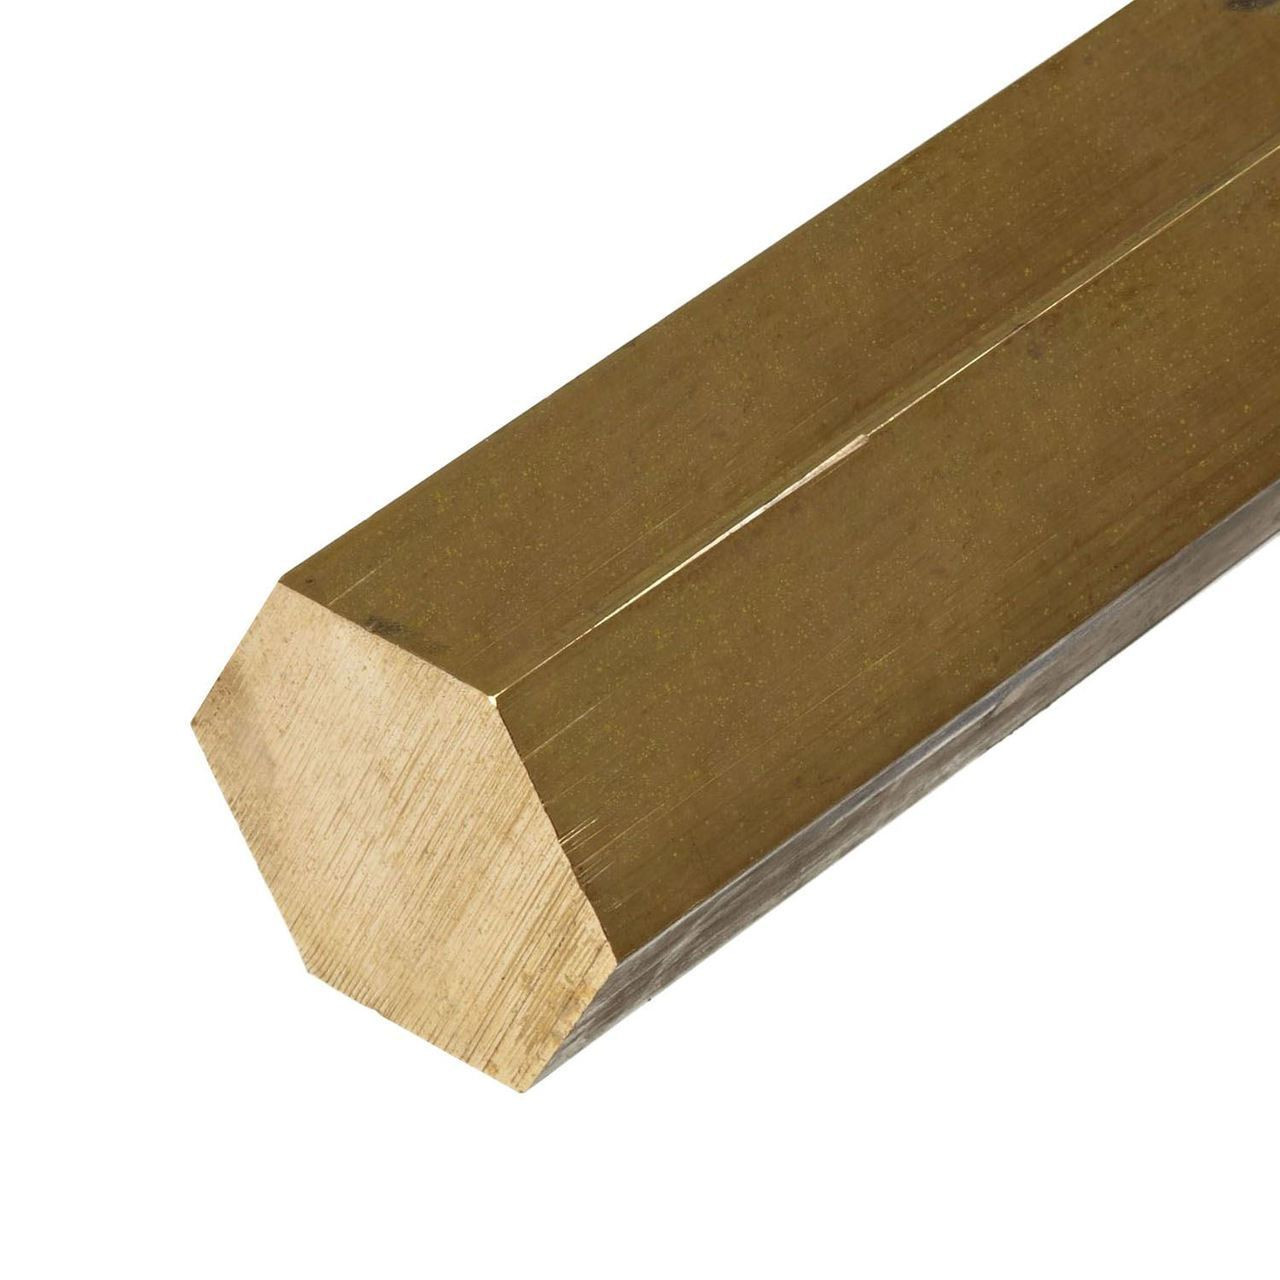 C360 Brass Hexagon Bar, 1.562 (1-9/16 inch) x 36 inches